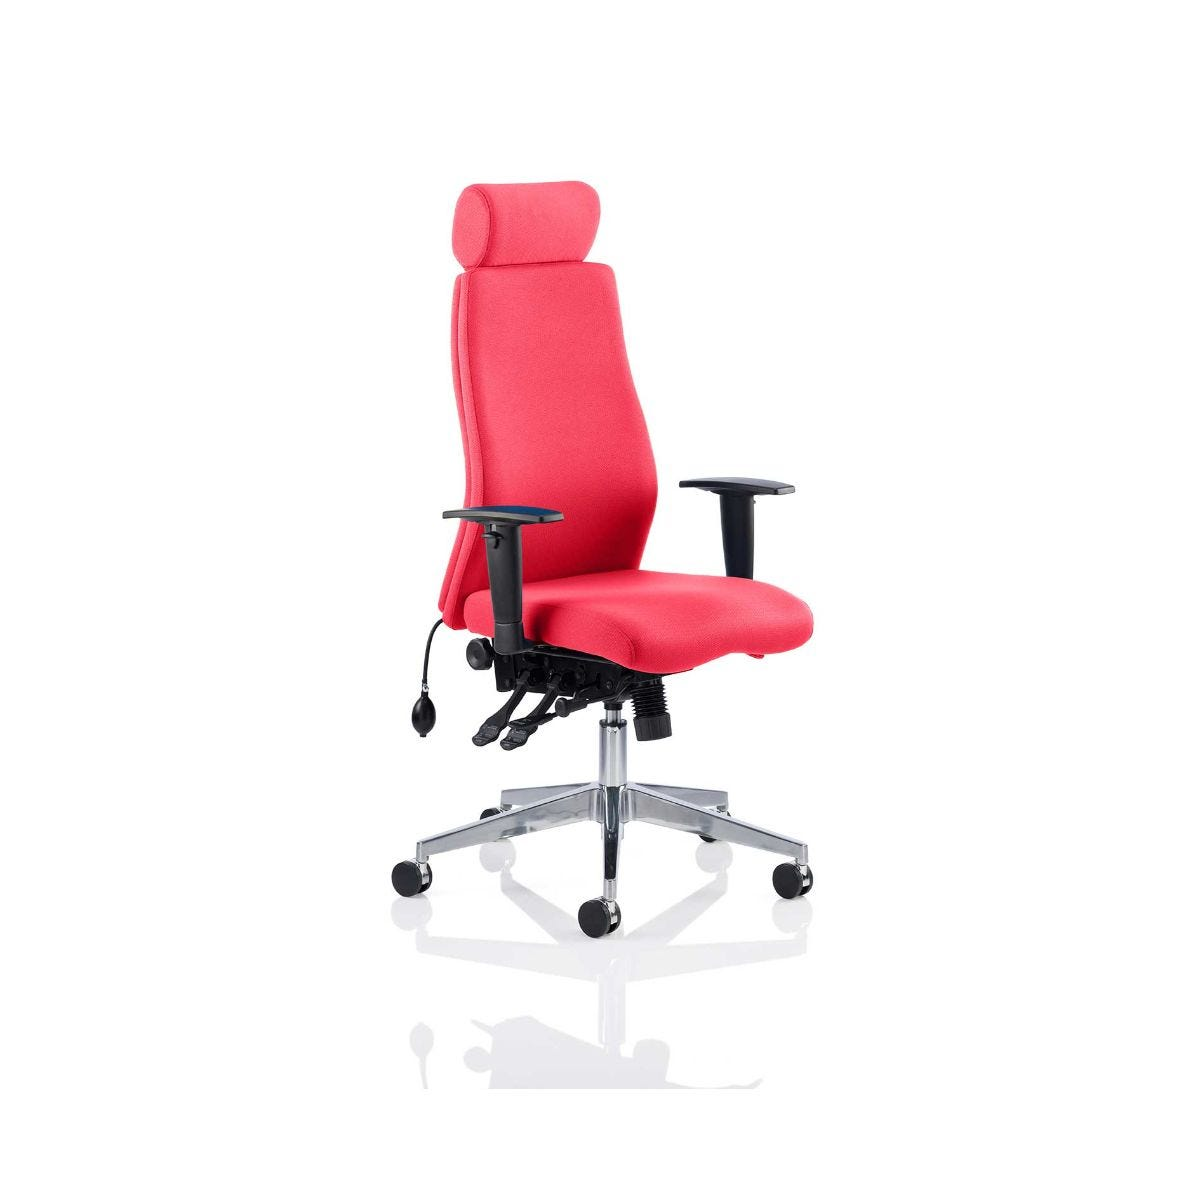 Onyx Bespoke Office Chair With Headrest, Bergamot